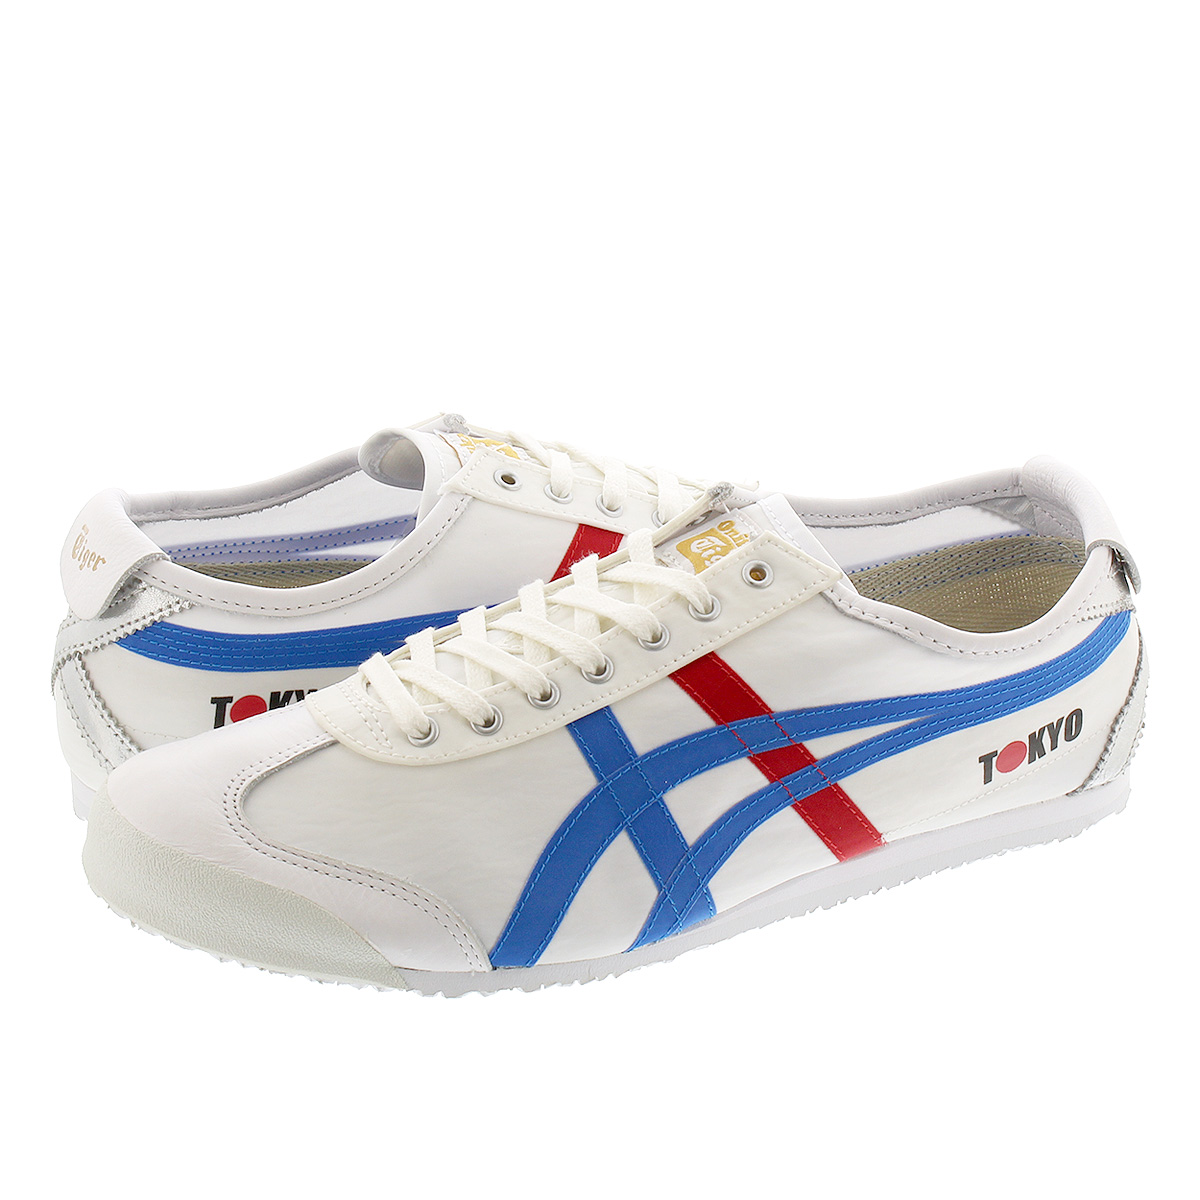 Onitsuka Tiger MEXICO 66 オニツカタイガー メキシコ 66 WHITE/DIRECTOIRE BLUE 1183a730-100